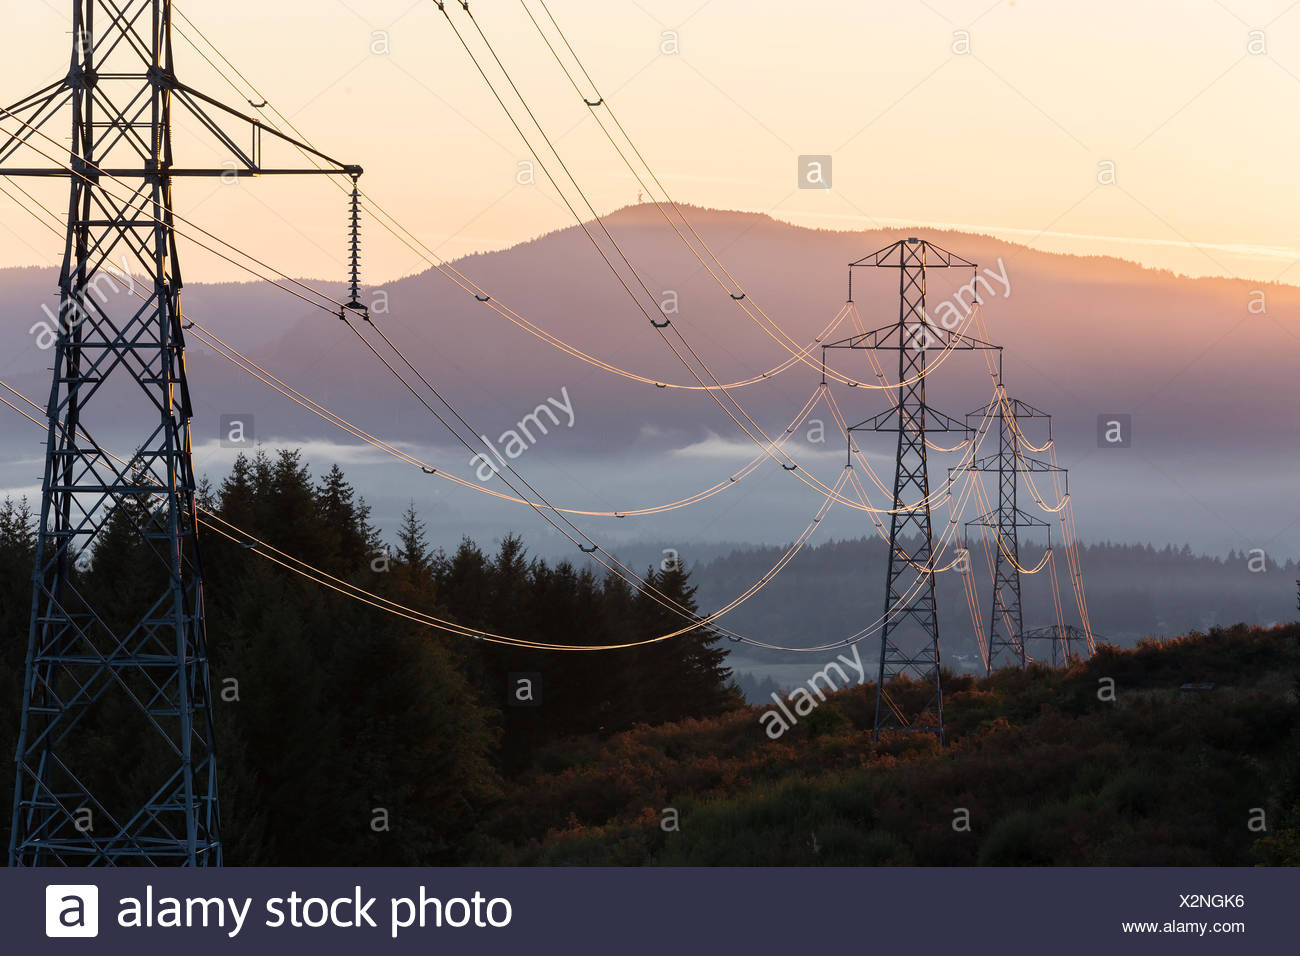 High tension power lines are illuminated by an early morning sunrise.  Duncan, Vancouver Island, British Columbia, Canada. - Stock Image